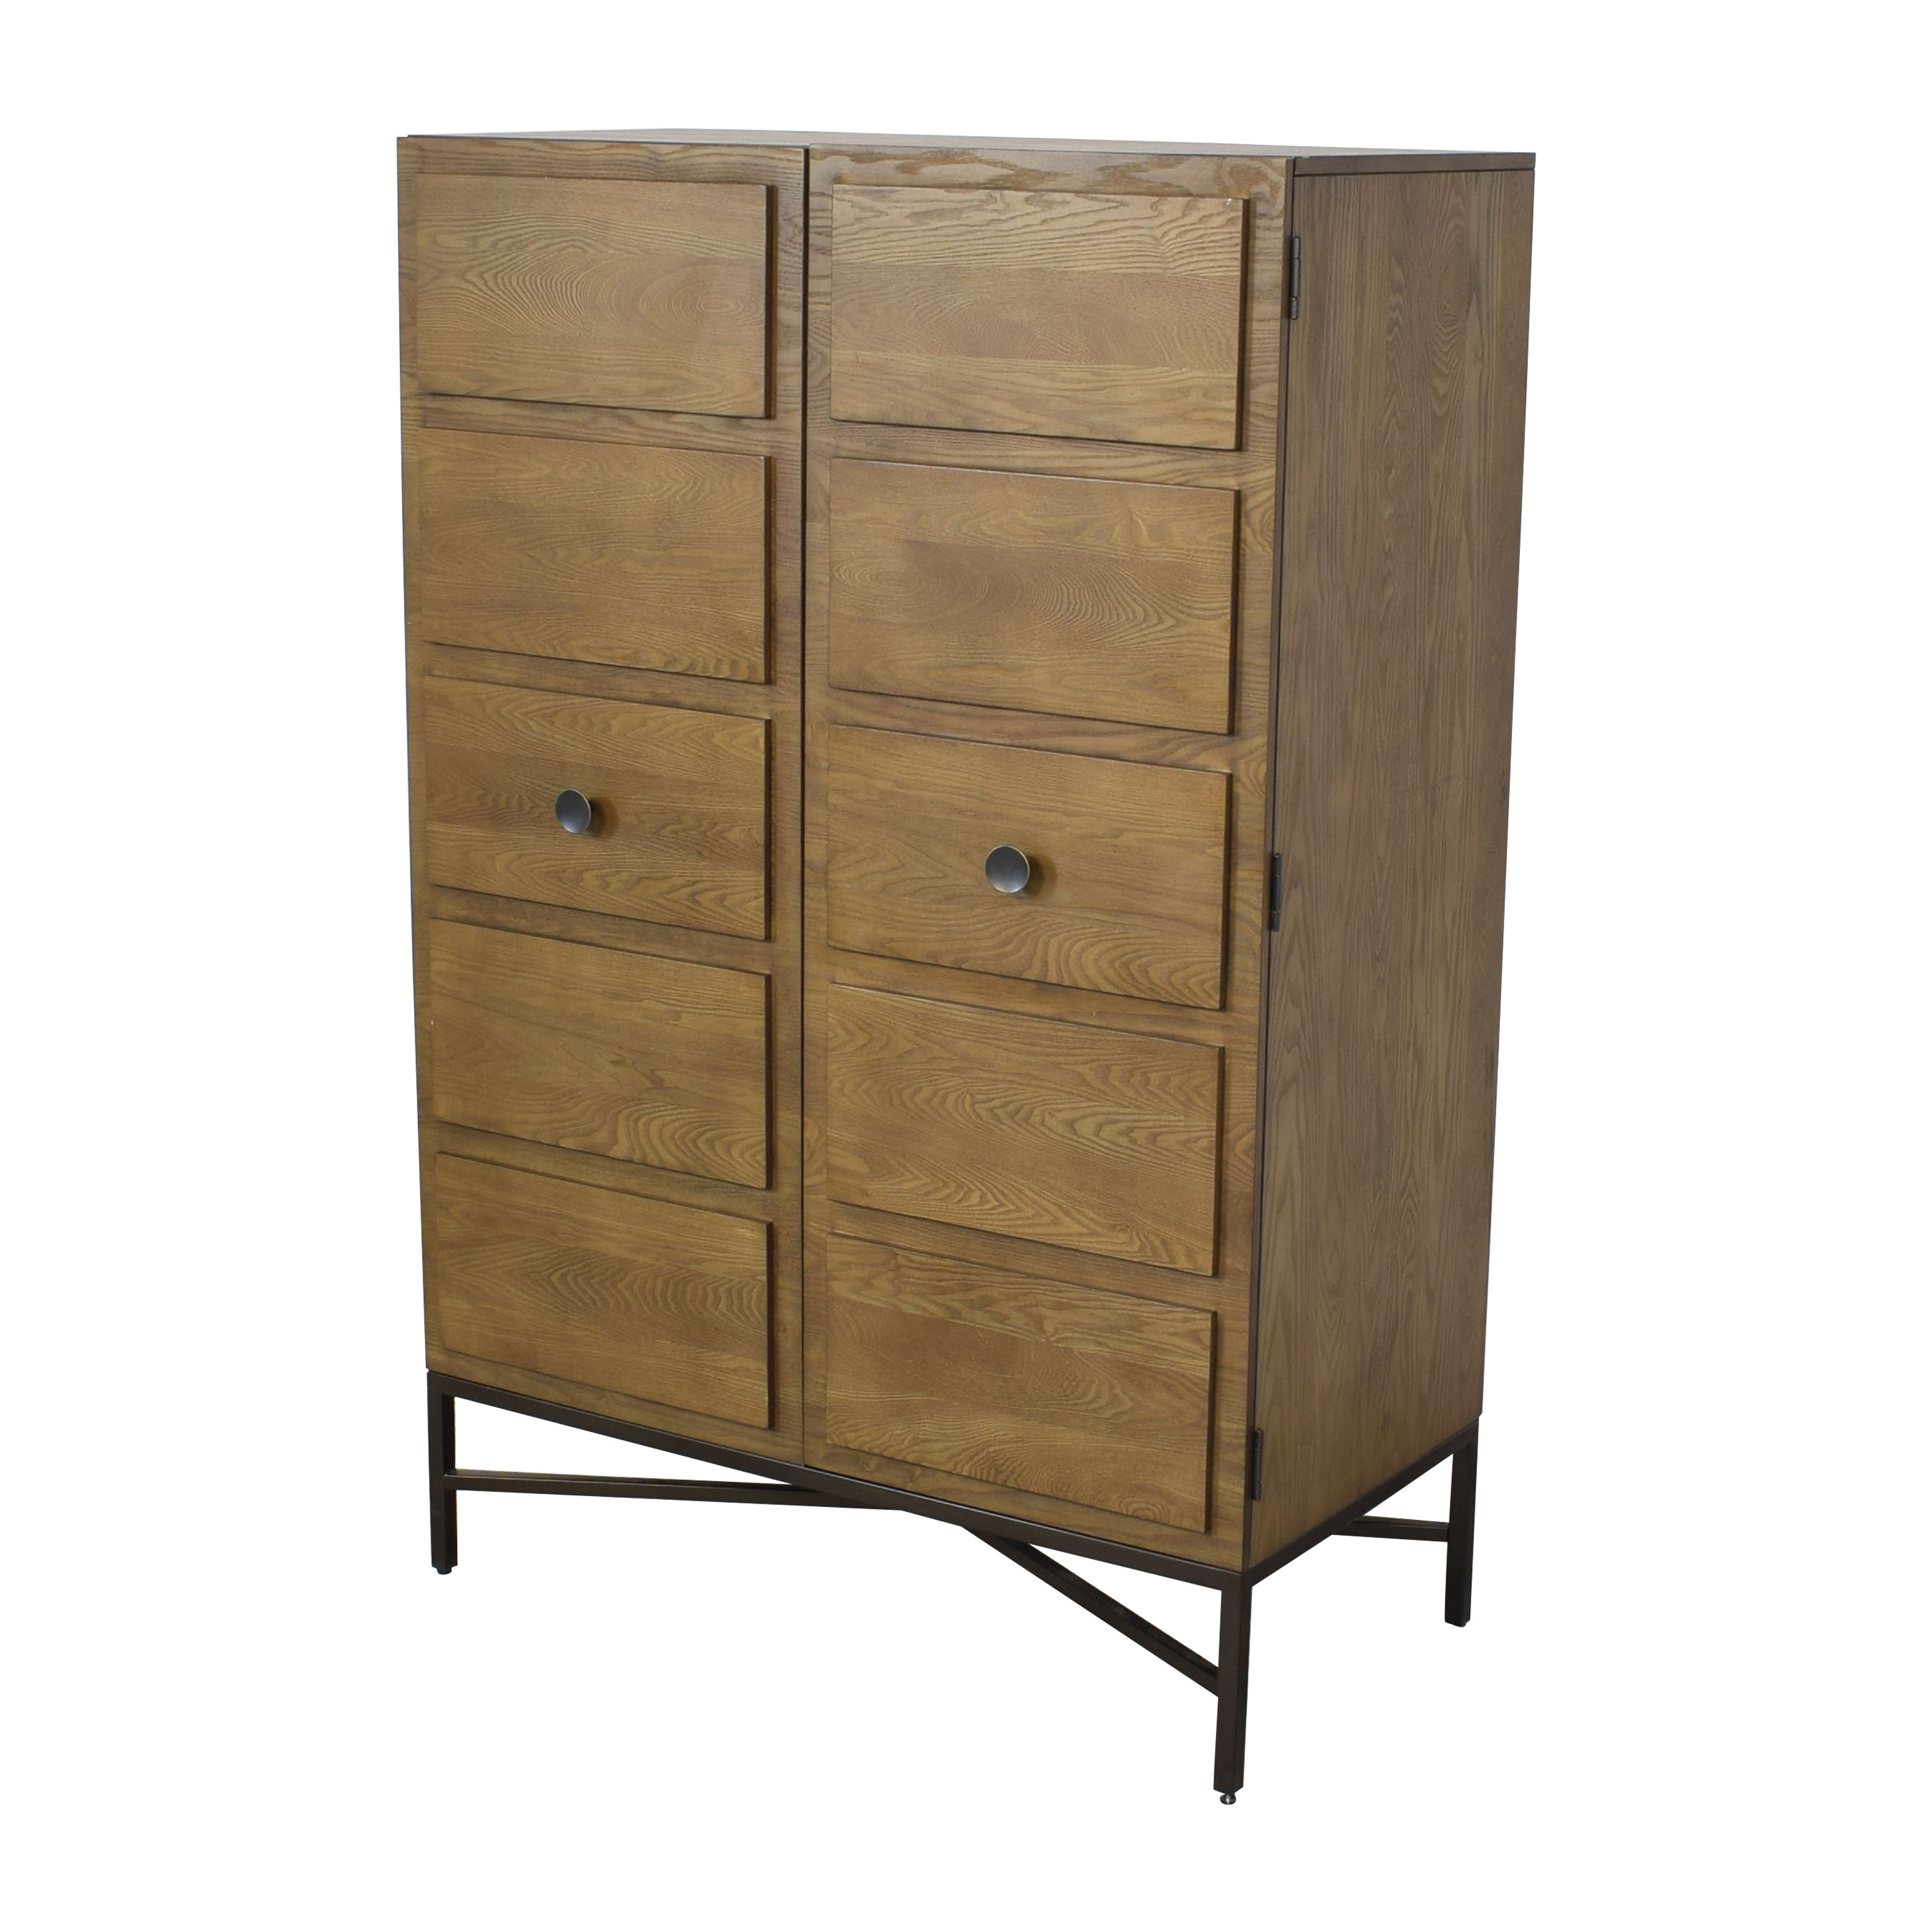 West Elm West Elm Paneled Armoire Wardrobes & Armoires